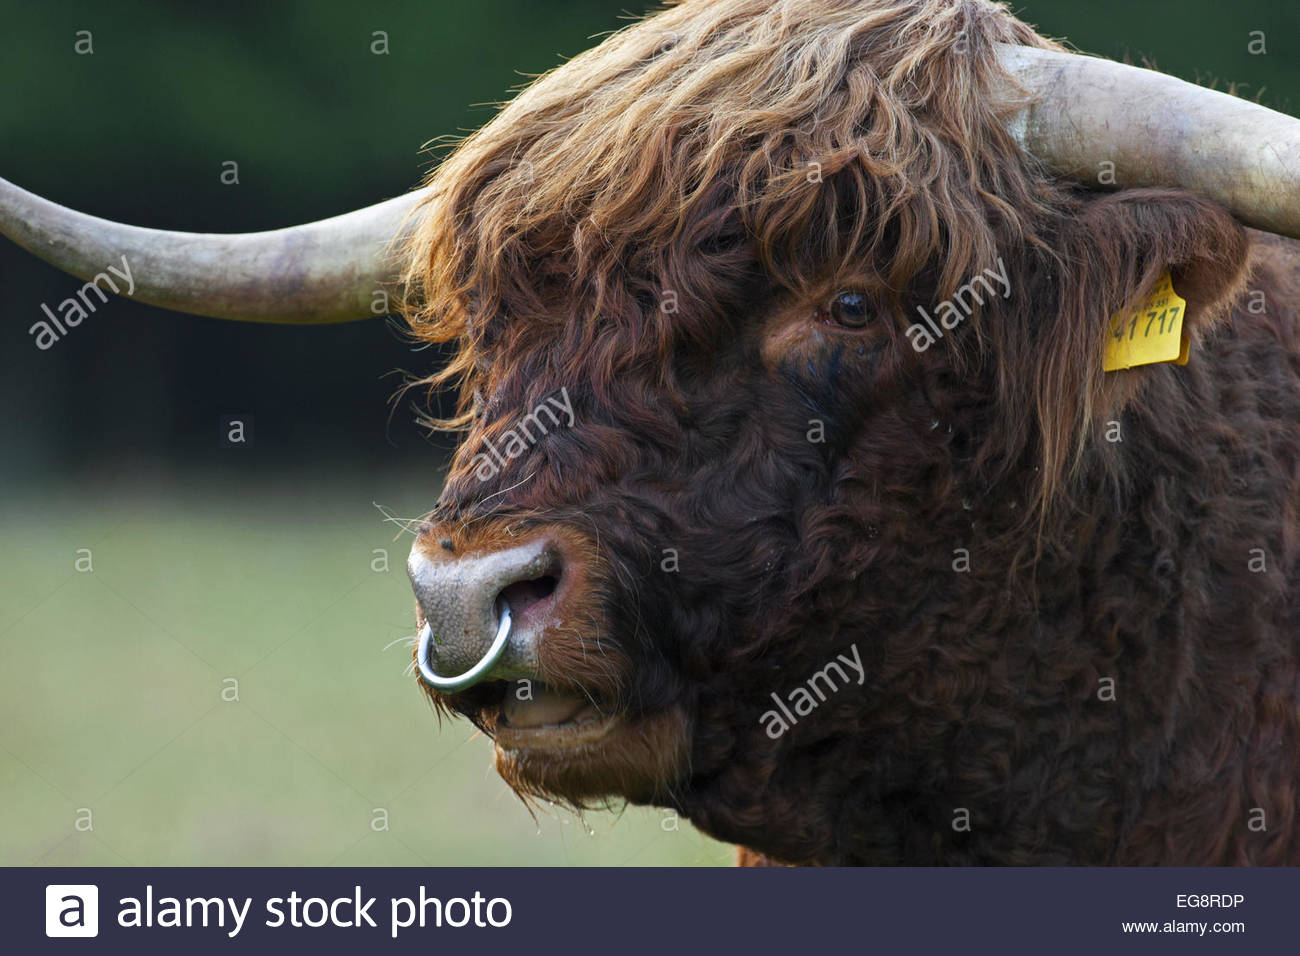 Highland Cattle Bos Taurus Close Up Of Bull Wearing Nose Ring